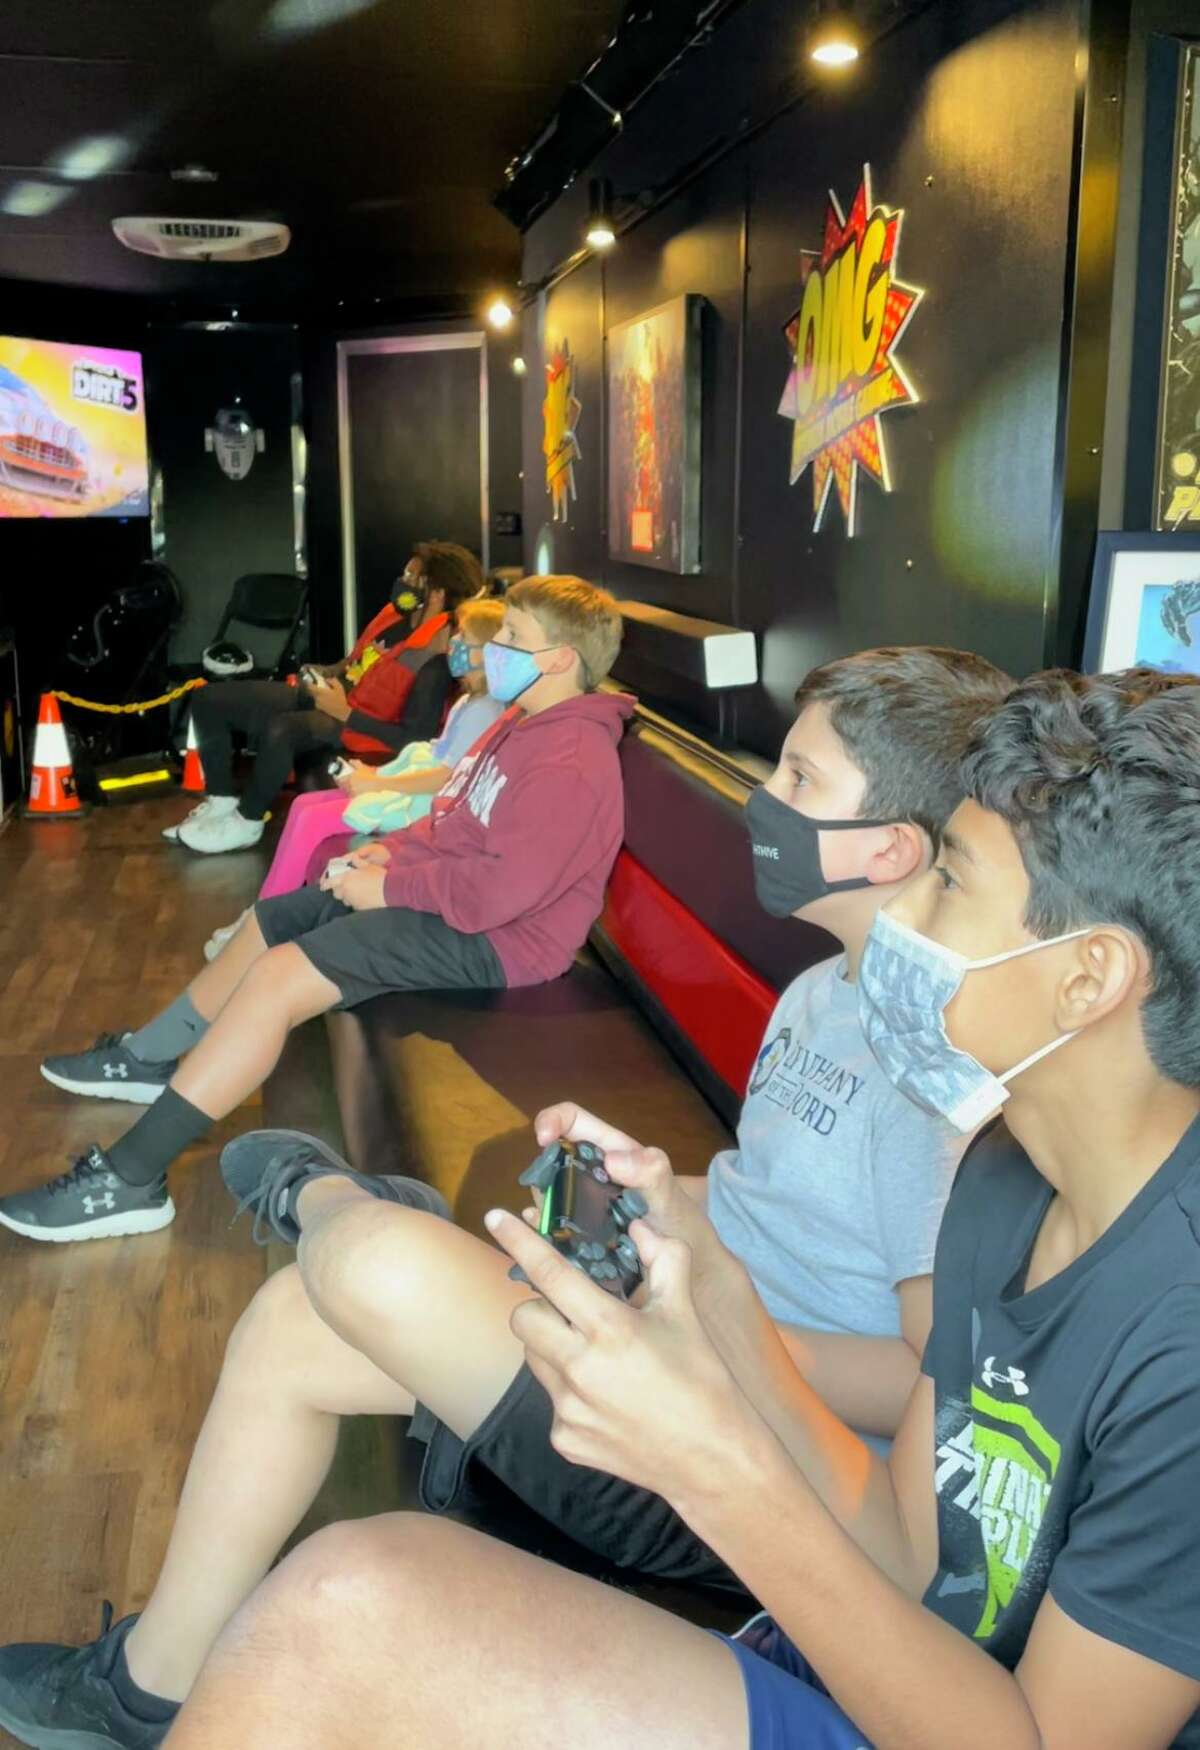 Children attending a birthday party play video games in Optimum Mobile Gaming's video game truck on Jan. 22, 2021.